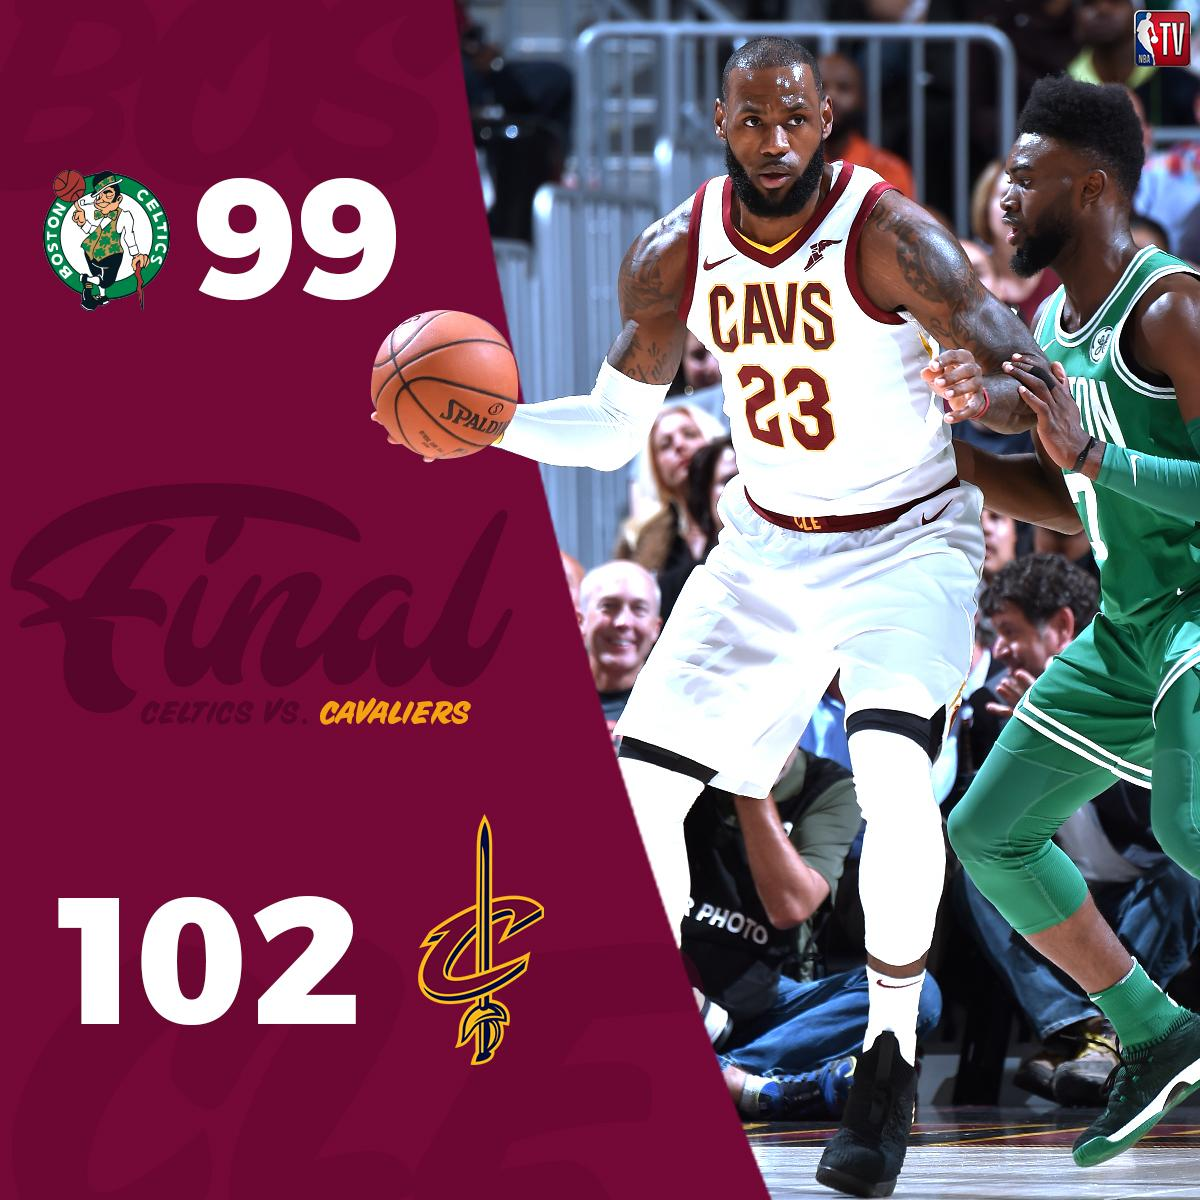 The @cavs defeat the @celtics in the first game of the NBA regular season. #AllForOne